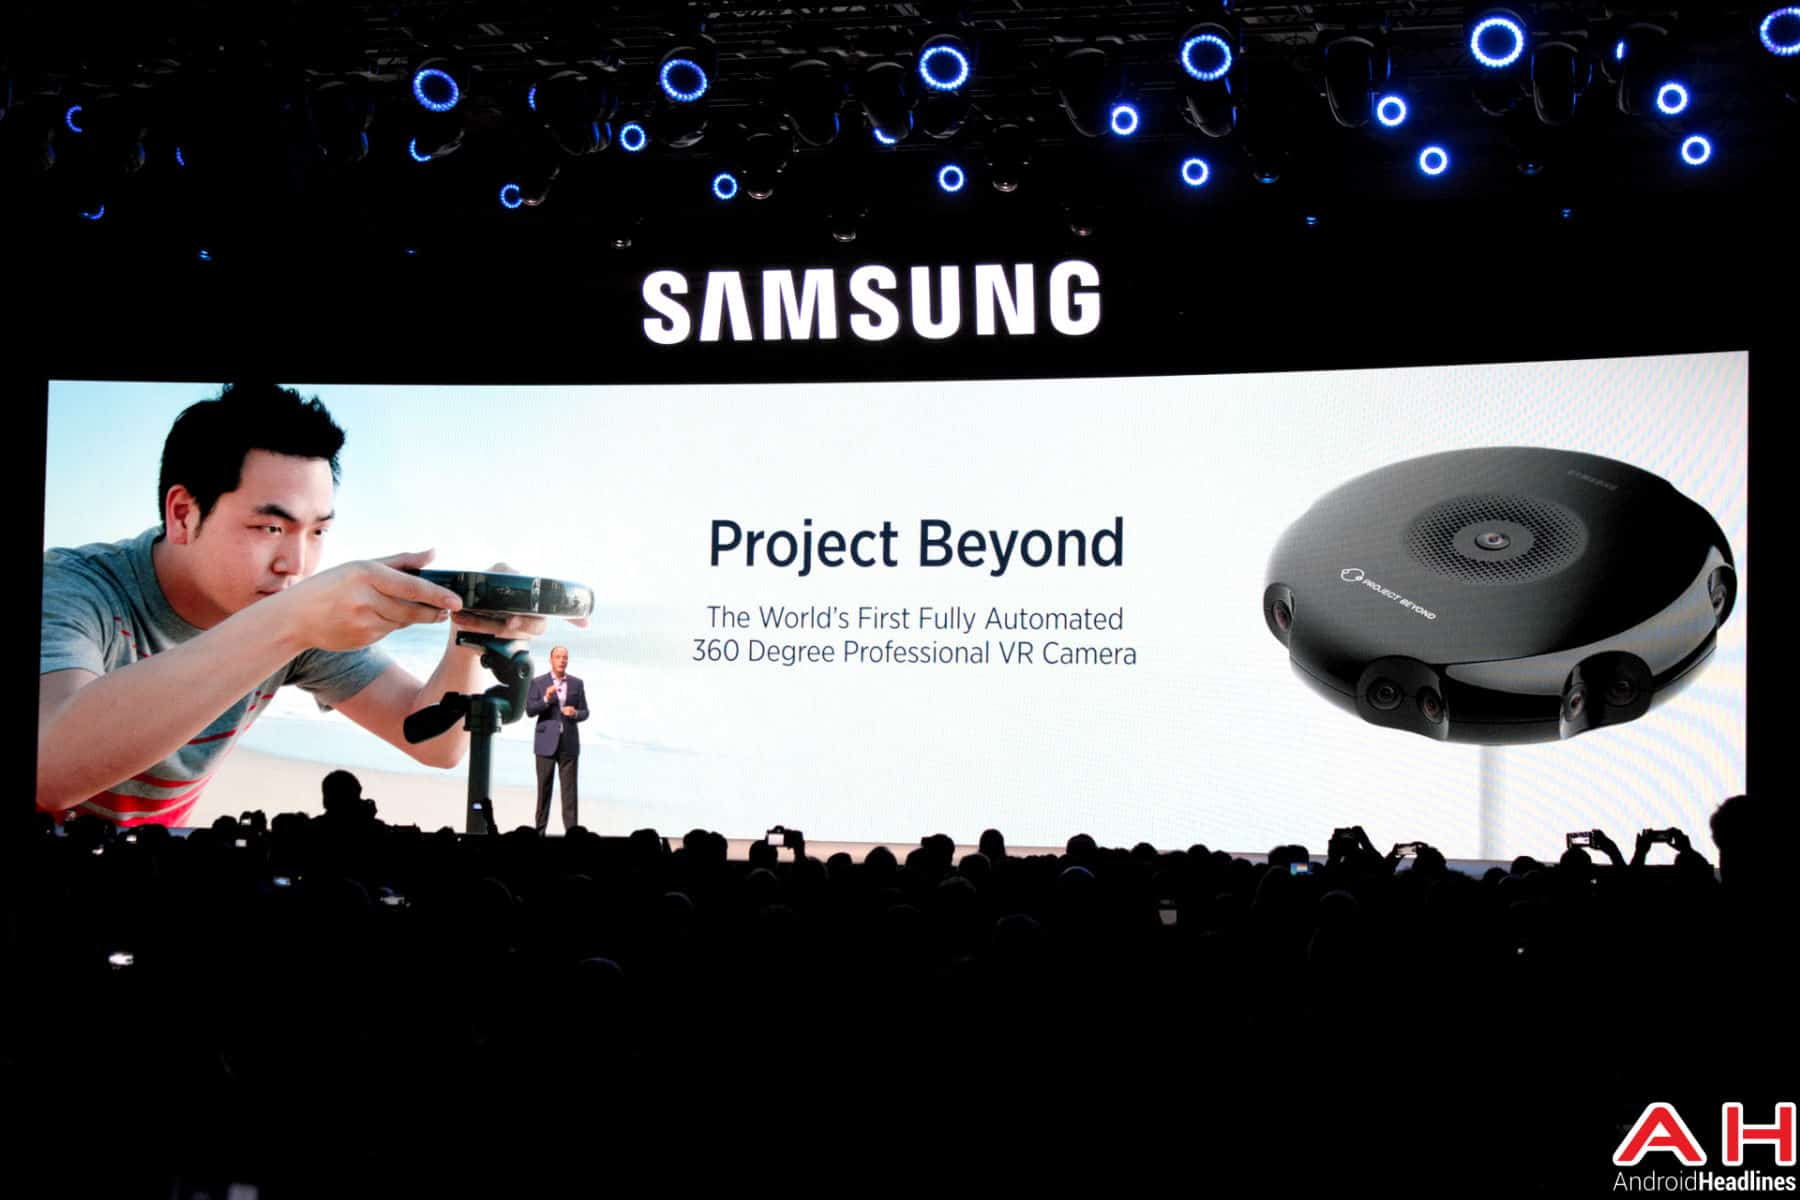 Samsung Project Beyond CES AH-1